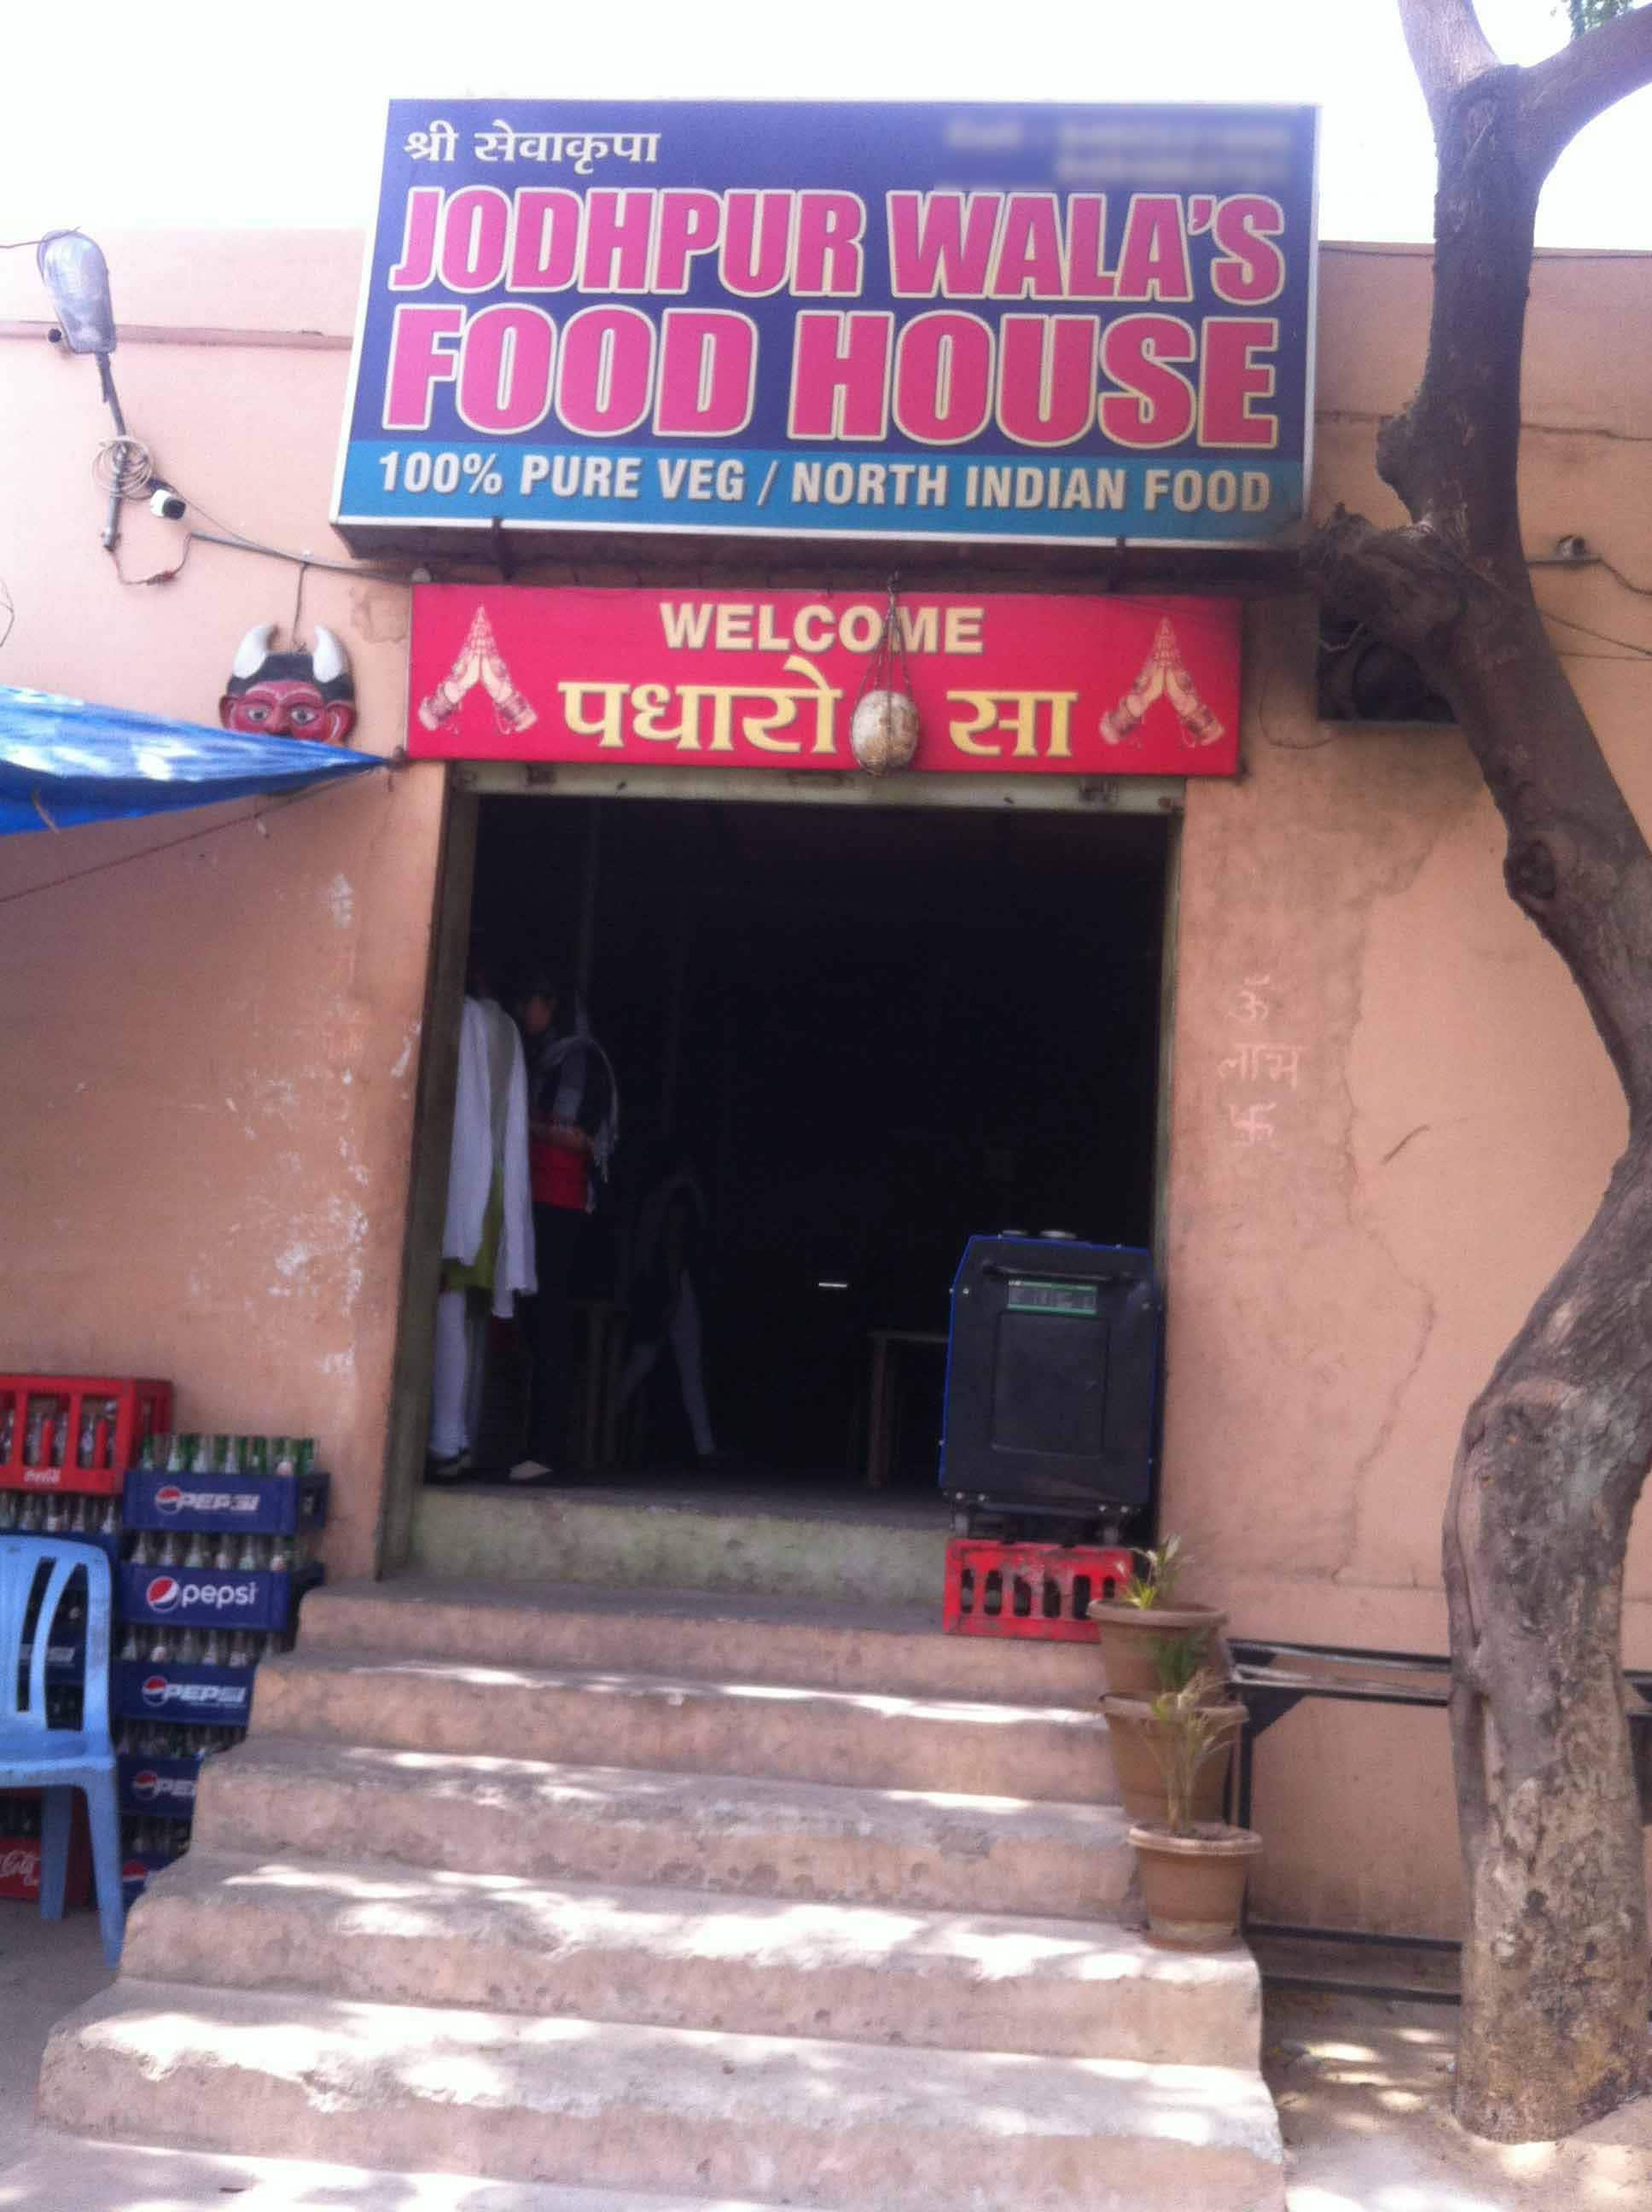 Jodhpur Wala's Food House. Image Courtesy: Zomato.com